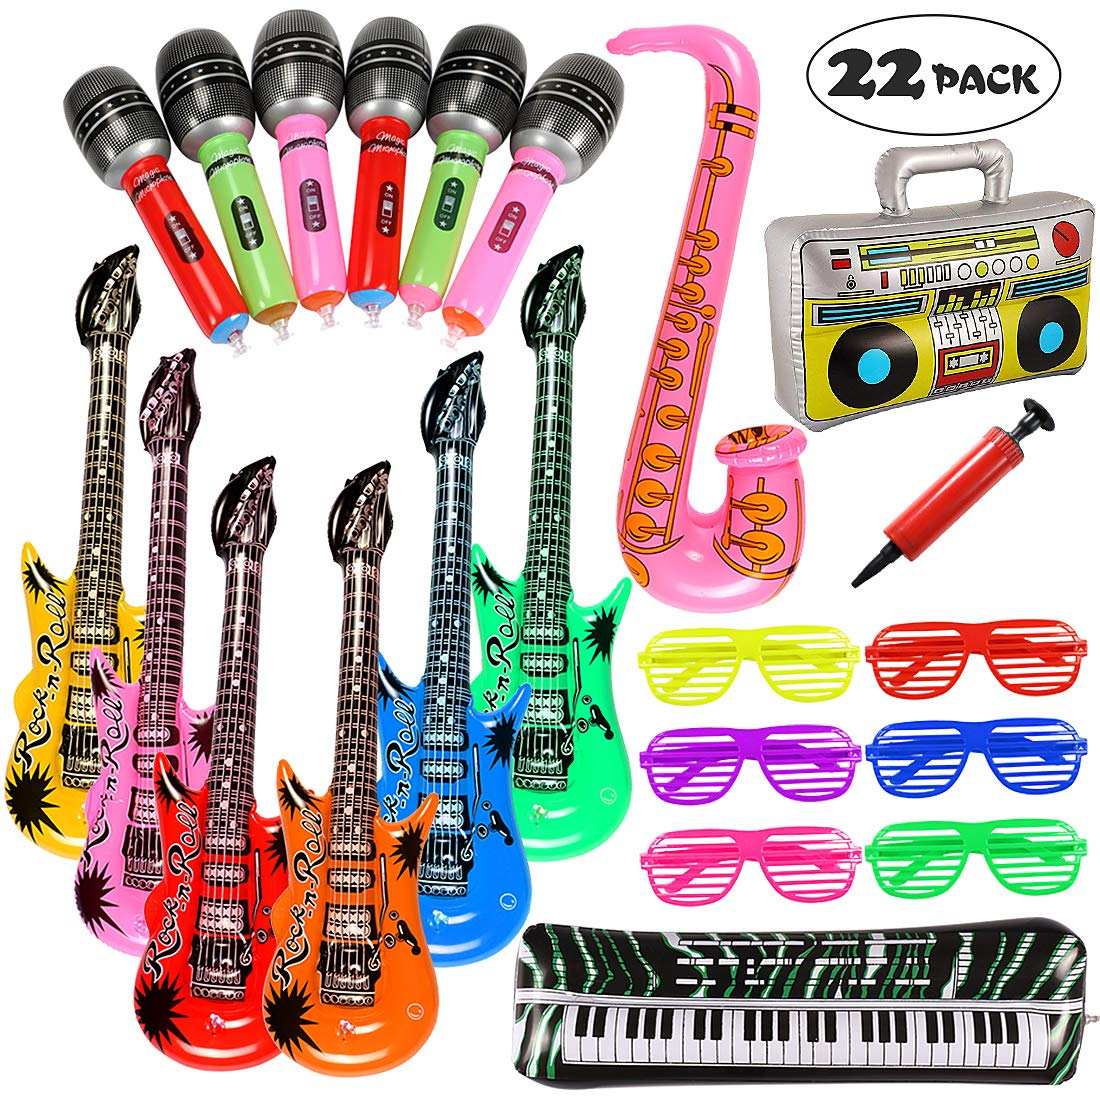 24 INFLATABLE MICROPHONES Party Favor Rock Free Shipping 48 INFLATABLE GUITARS